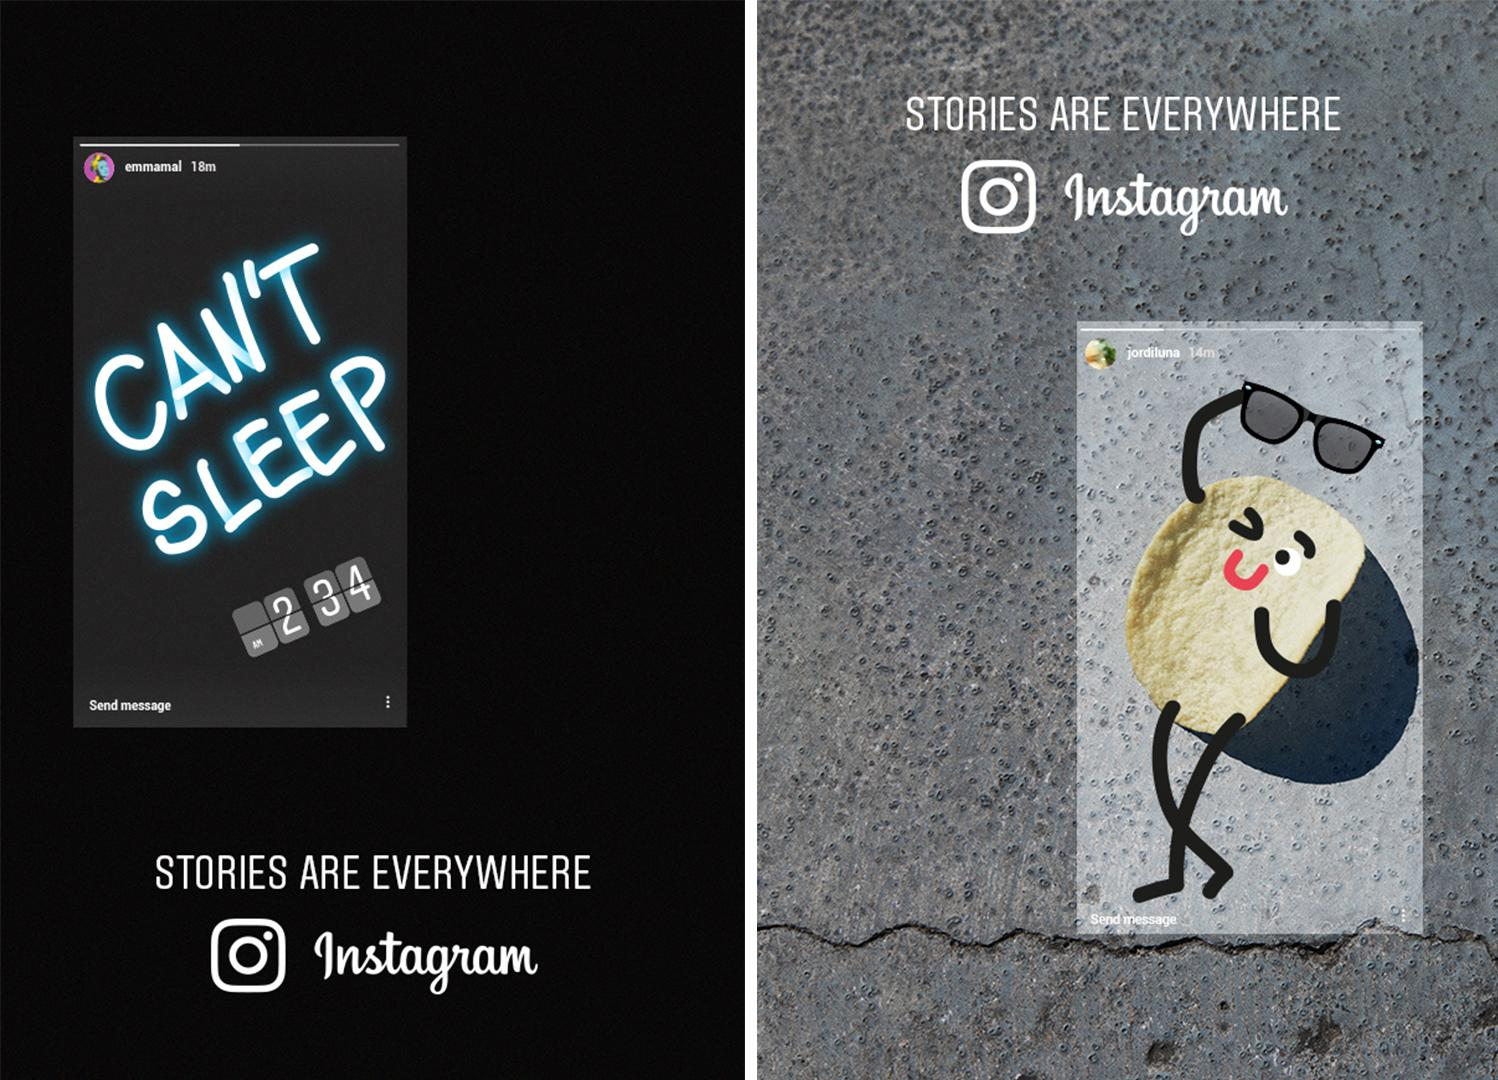 Instagram Integrated Ad - Stories Are Everywhere